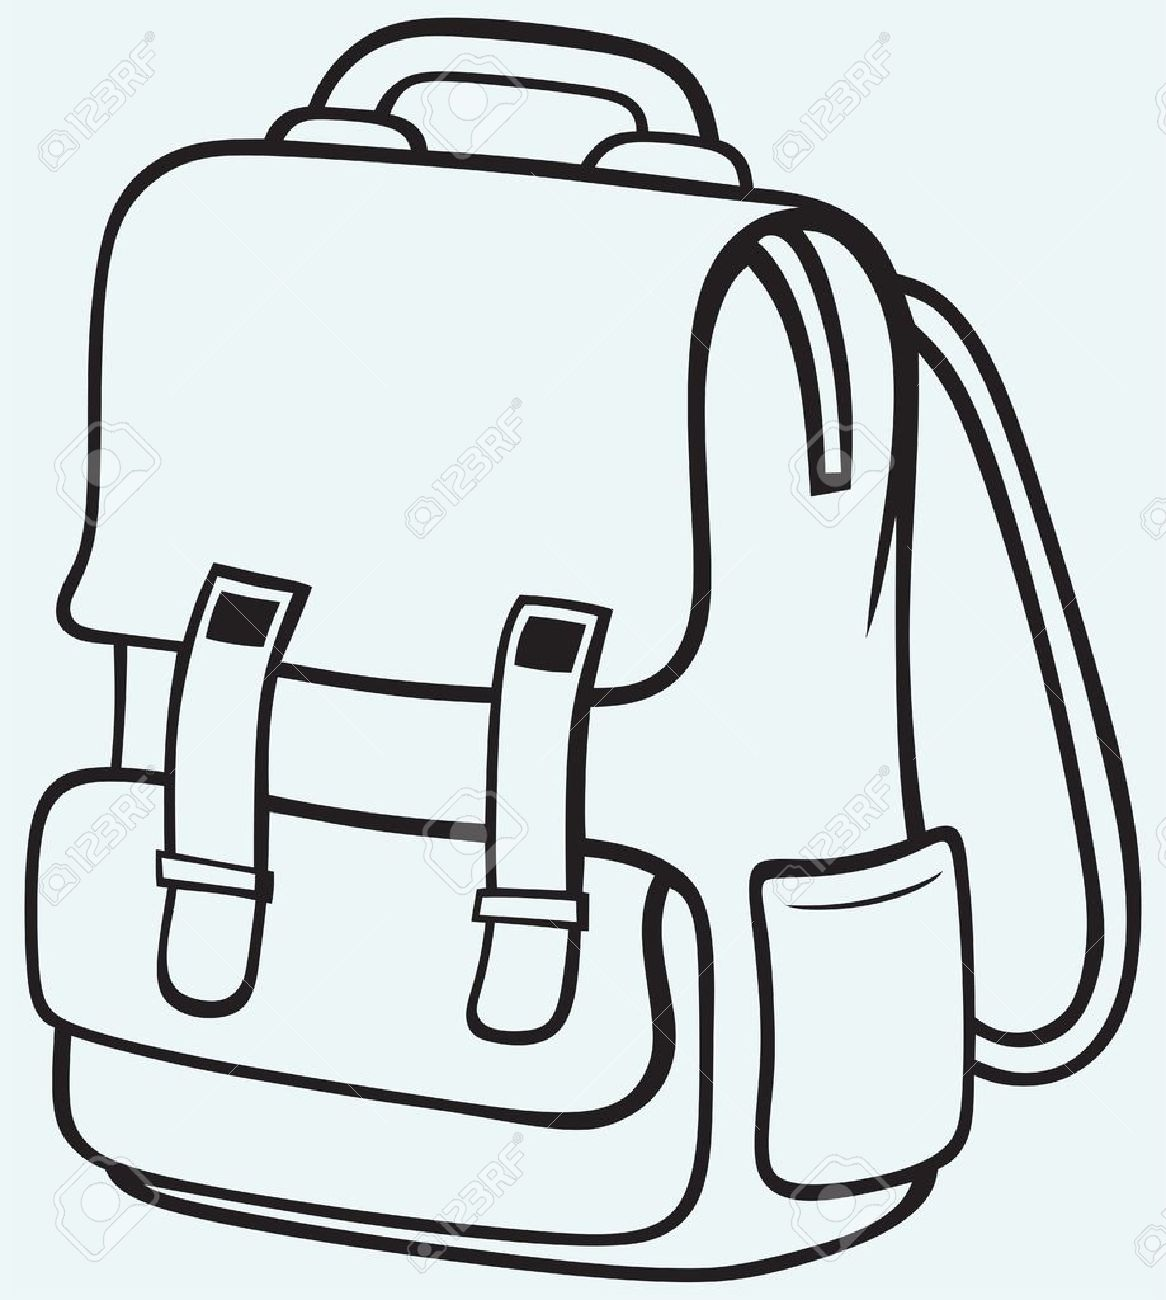 School Bag Clipart Black And White.